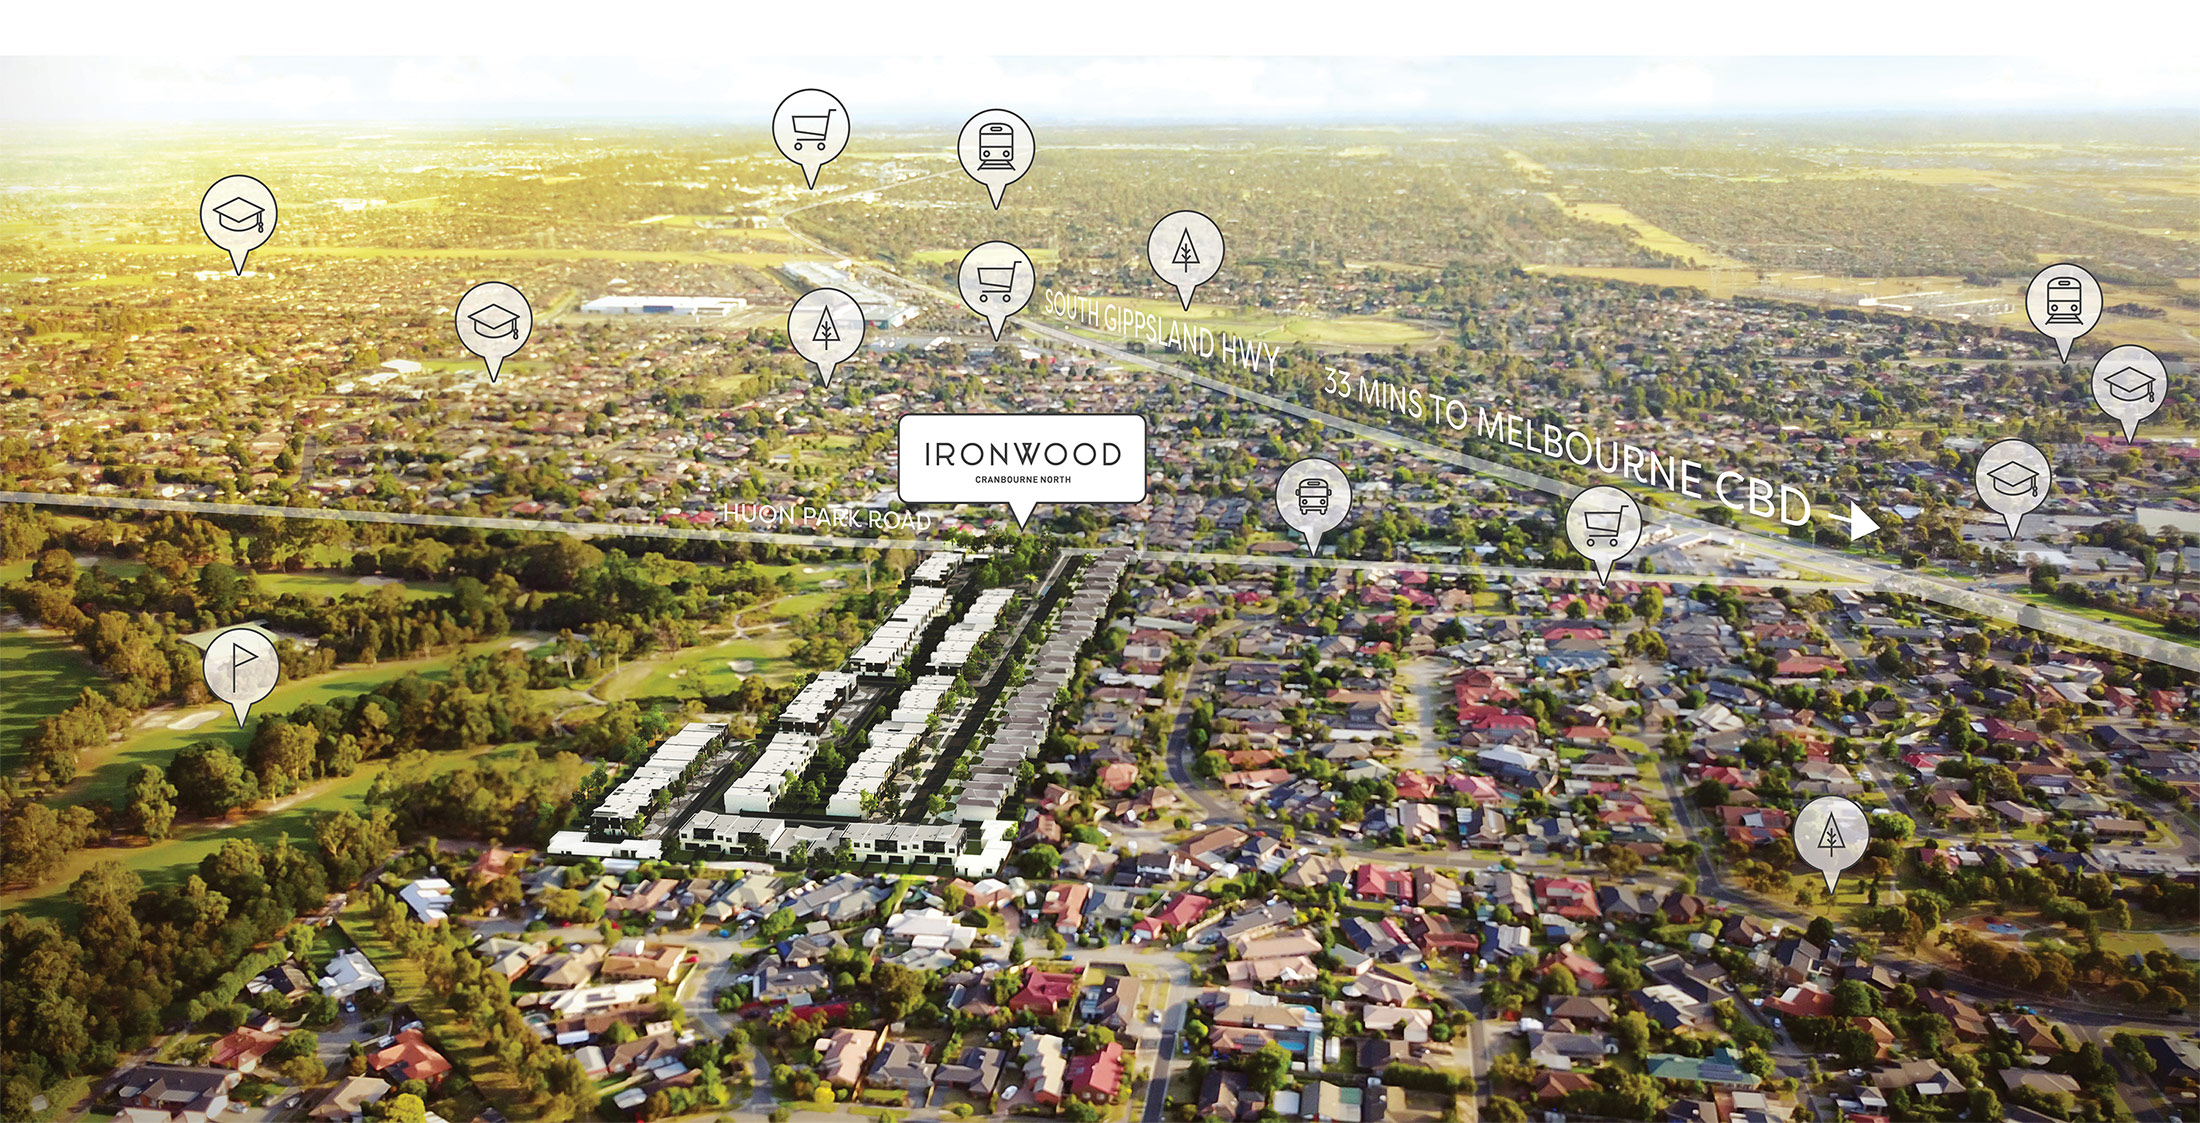 How to Reach Ironwood, Cranbourne North? – Ironwood